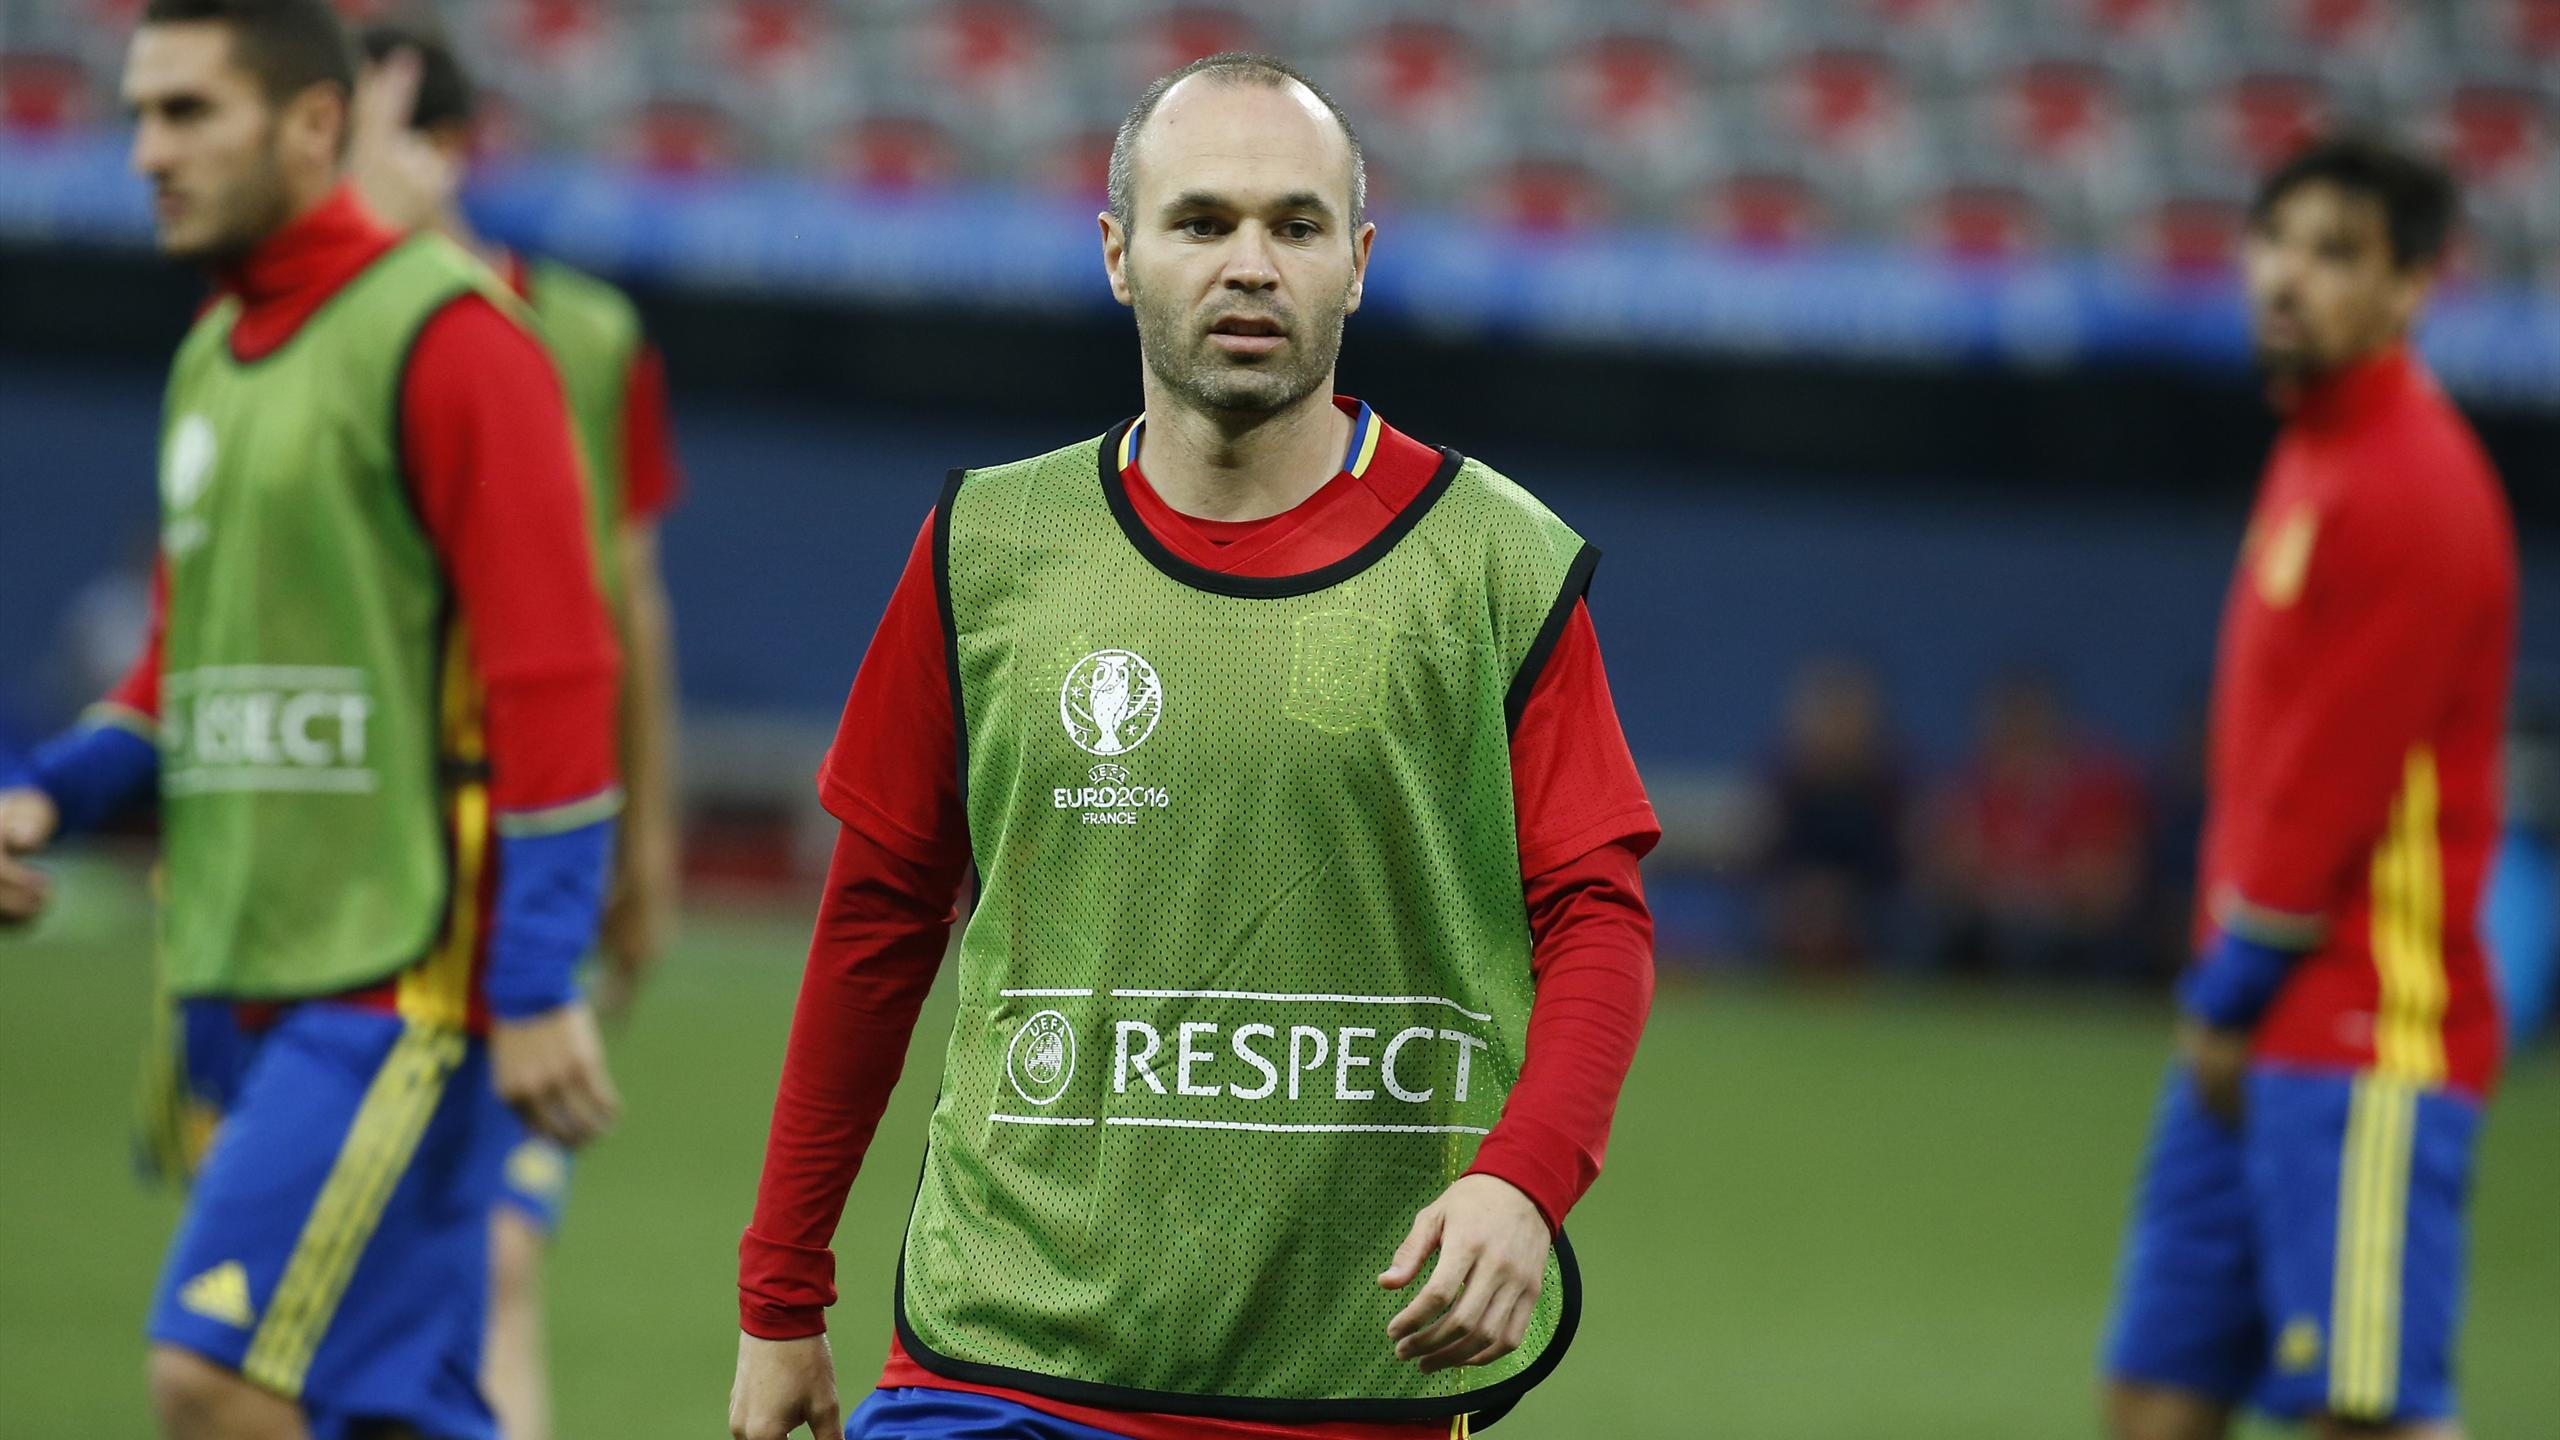 Spain's Andres Iniesta during a training session